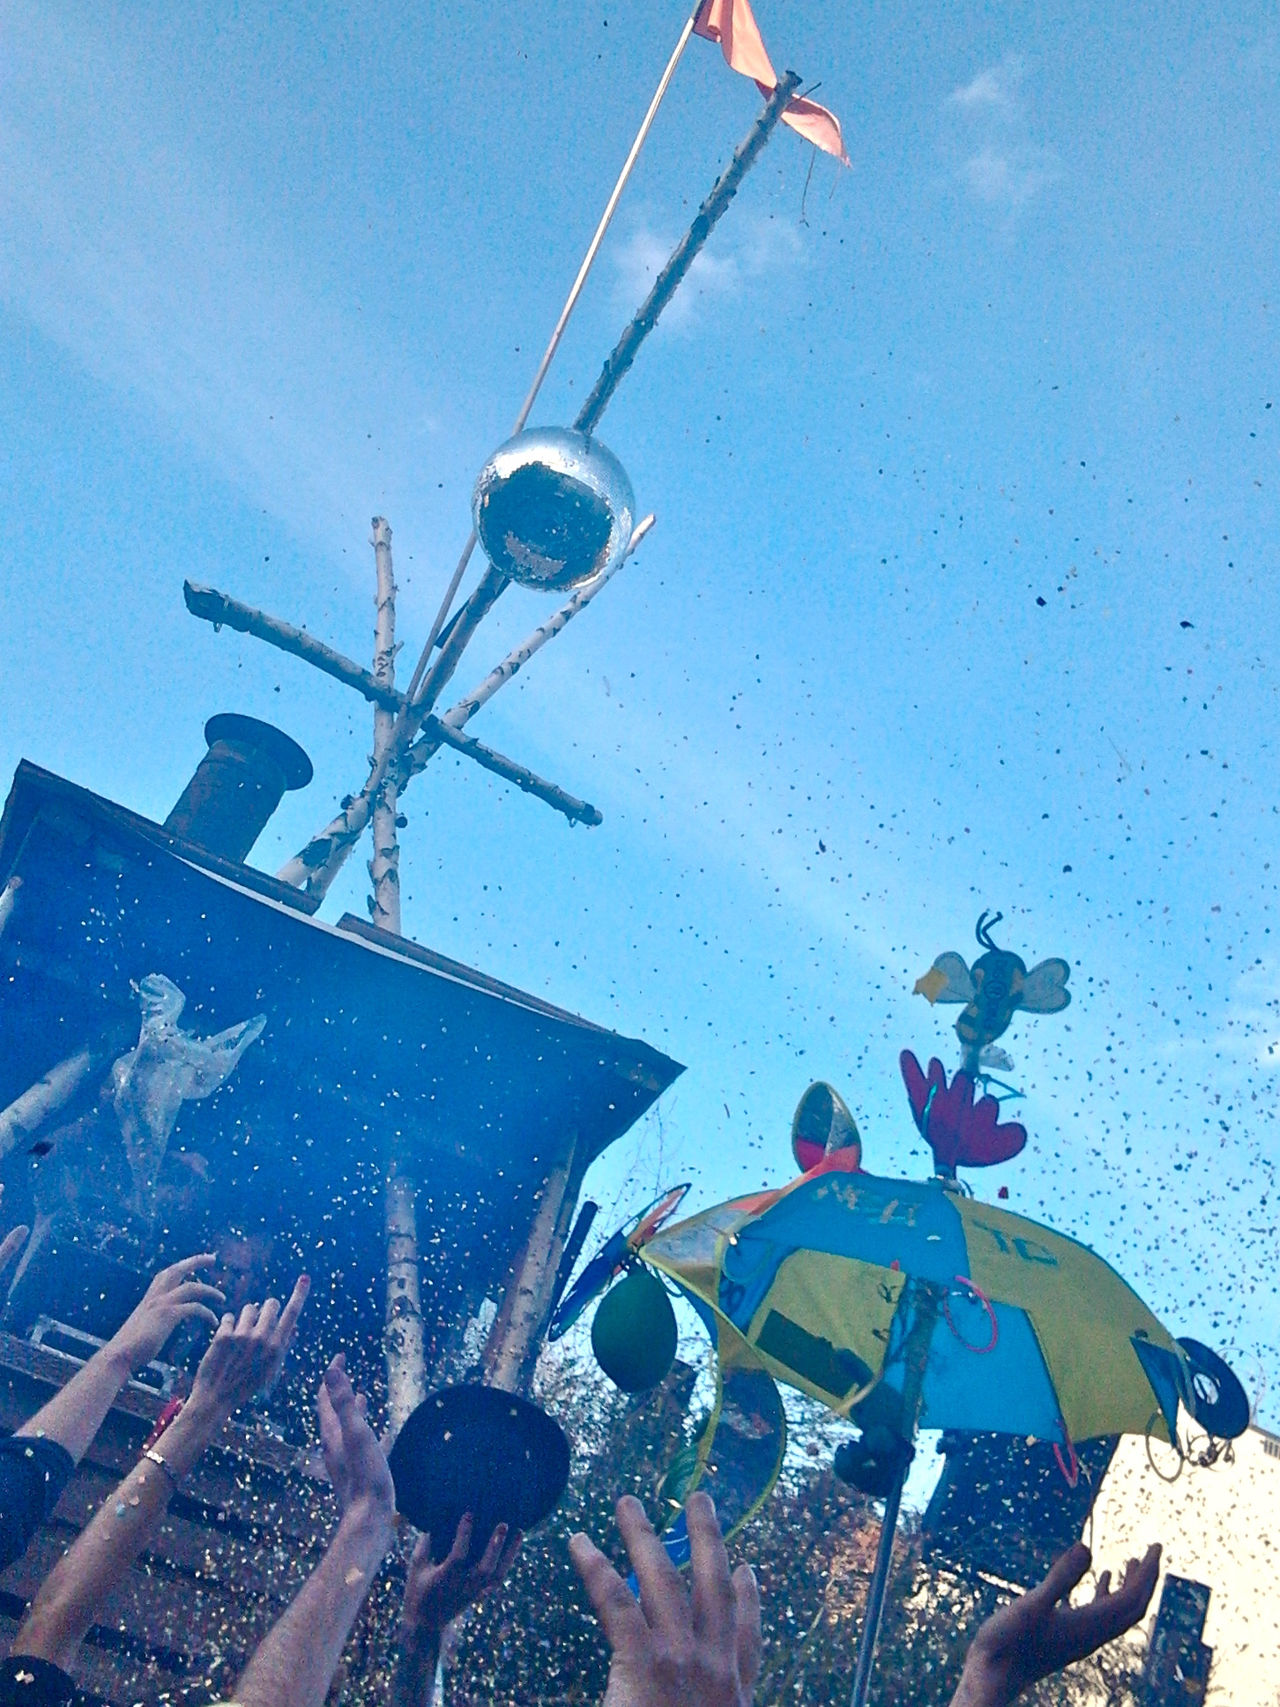 Adventure Berlin Clear Sky Clubbing Confetti Dancing Day Daytime Disco Ball Festival Friendship Hipster Low Angle View Open Air Part Of People Dancing Sky Soap Bubbles Summer